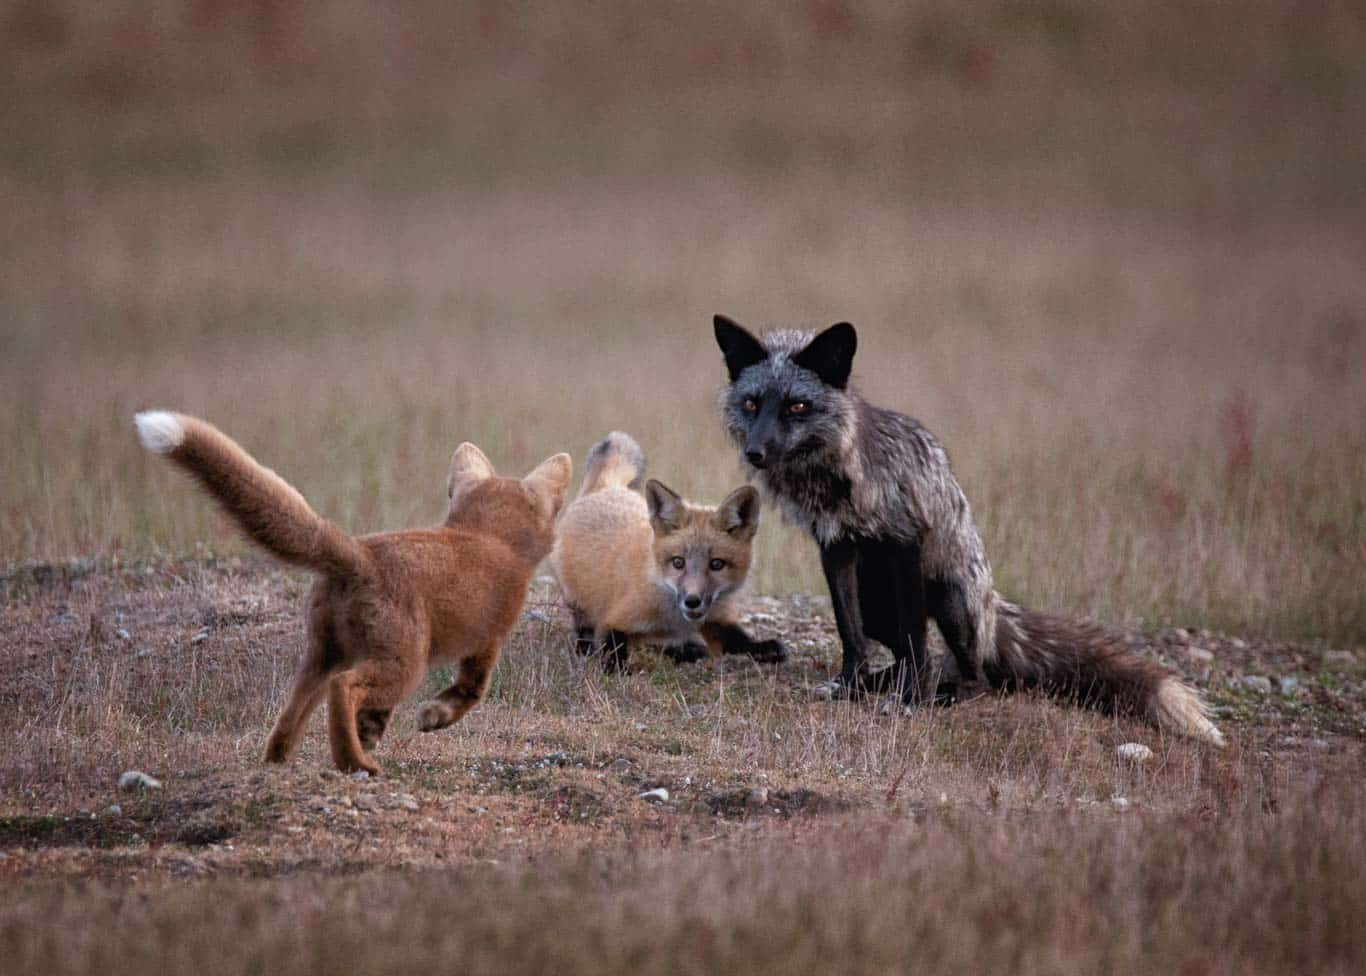 Red Fox and kits playing